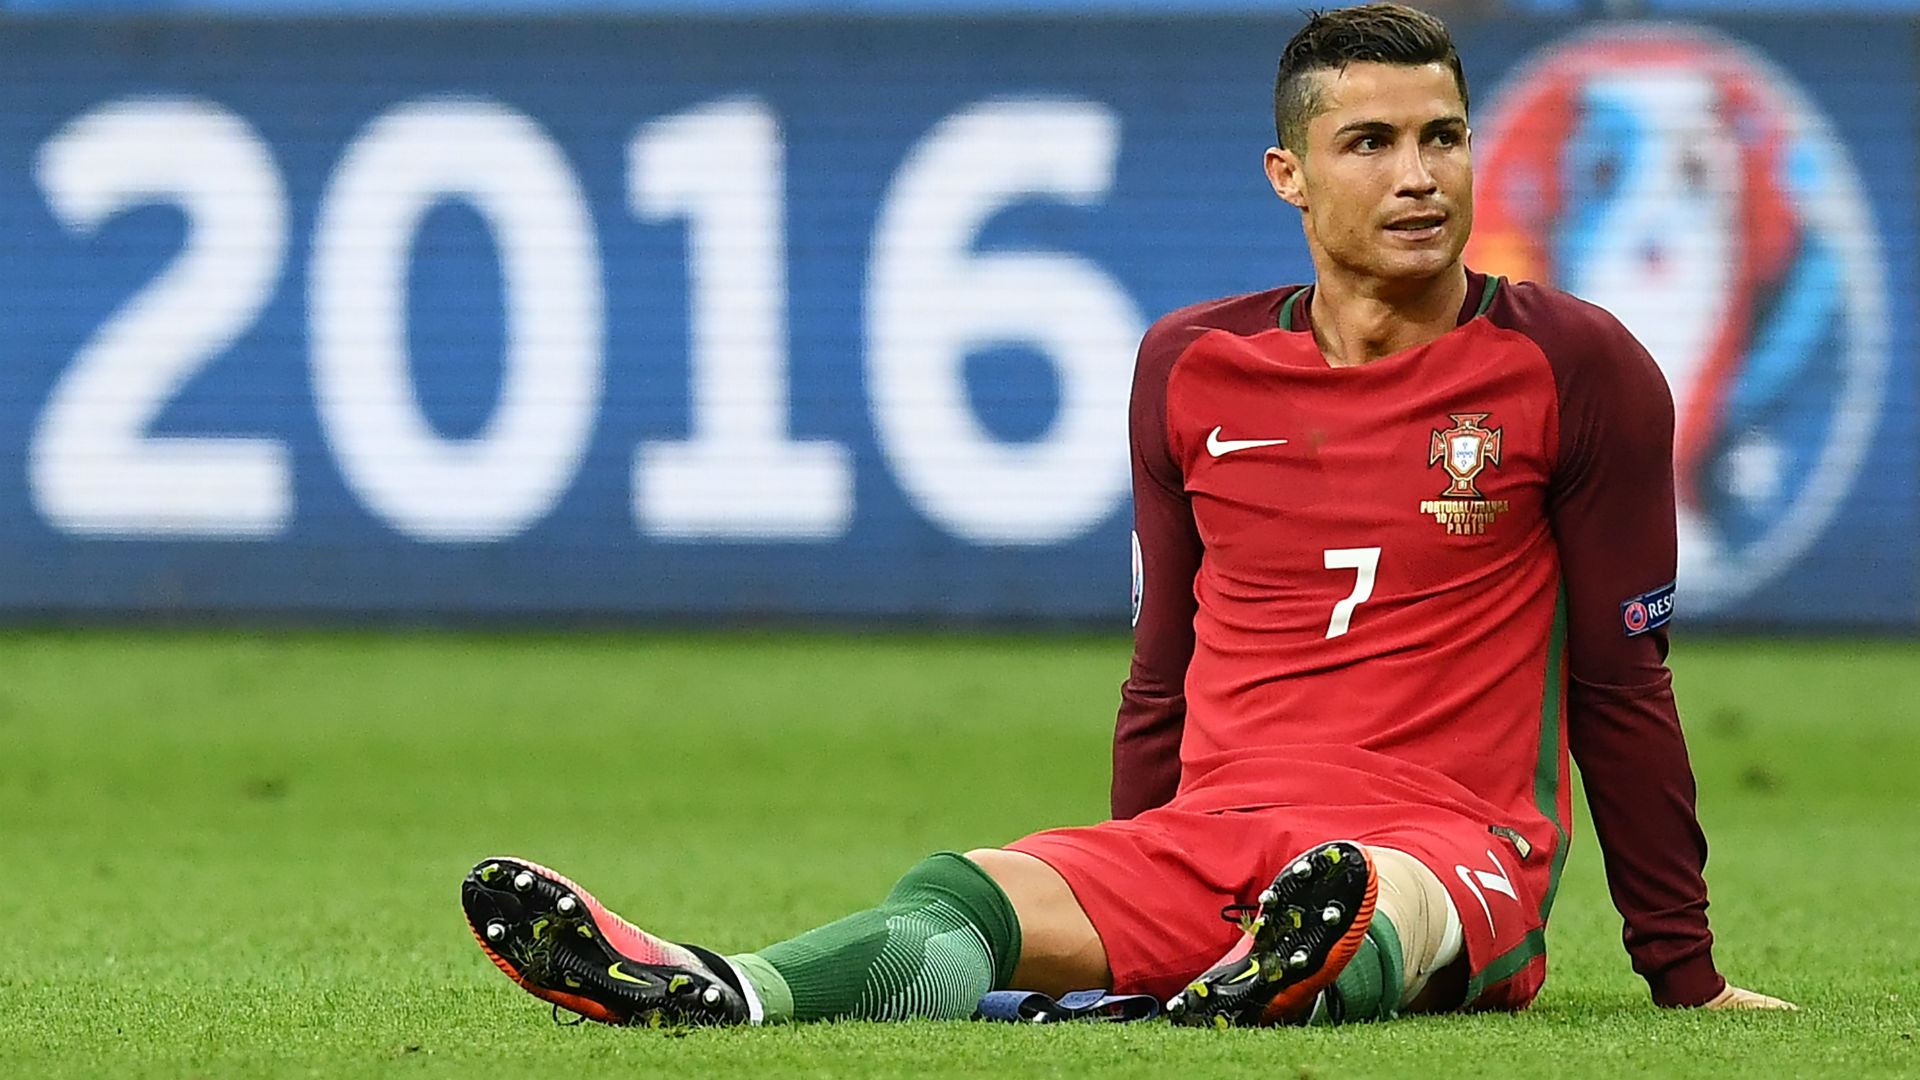 Euro 2016: Relying on Cristiano Ronaldo alone could hurt a ...